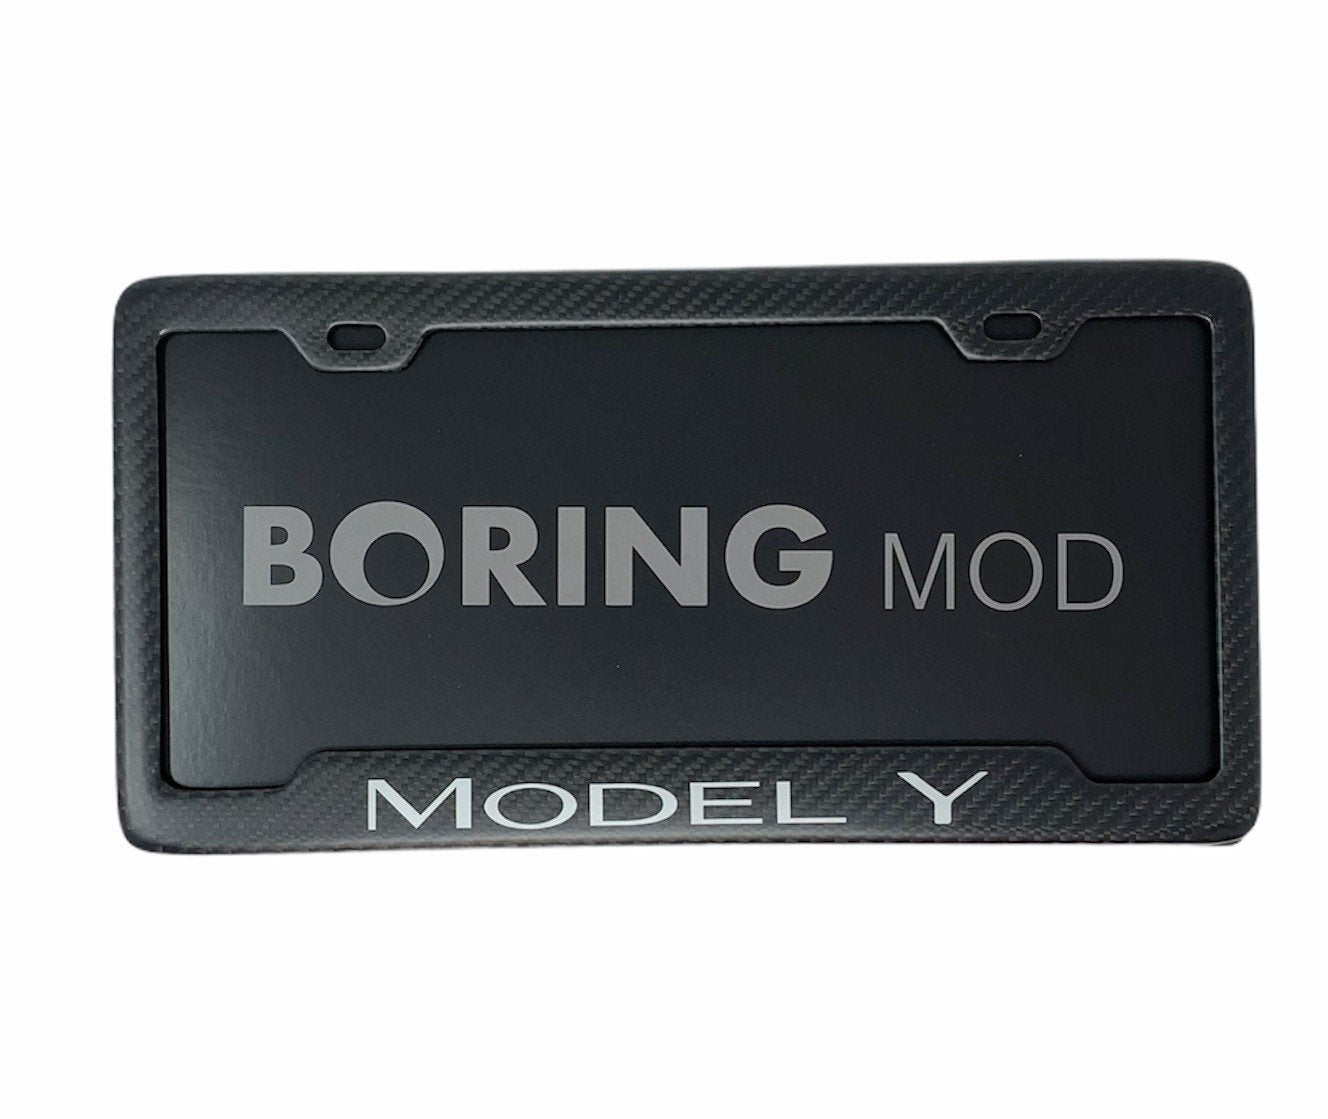 MODEL Y (White) on Carbon Fiber Matte Metal License Plate Frame / Fits Tesla / Warranty / Custom Cali / Performance BORINGmod